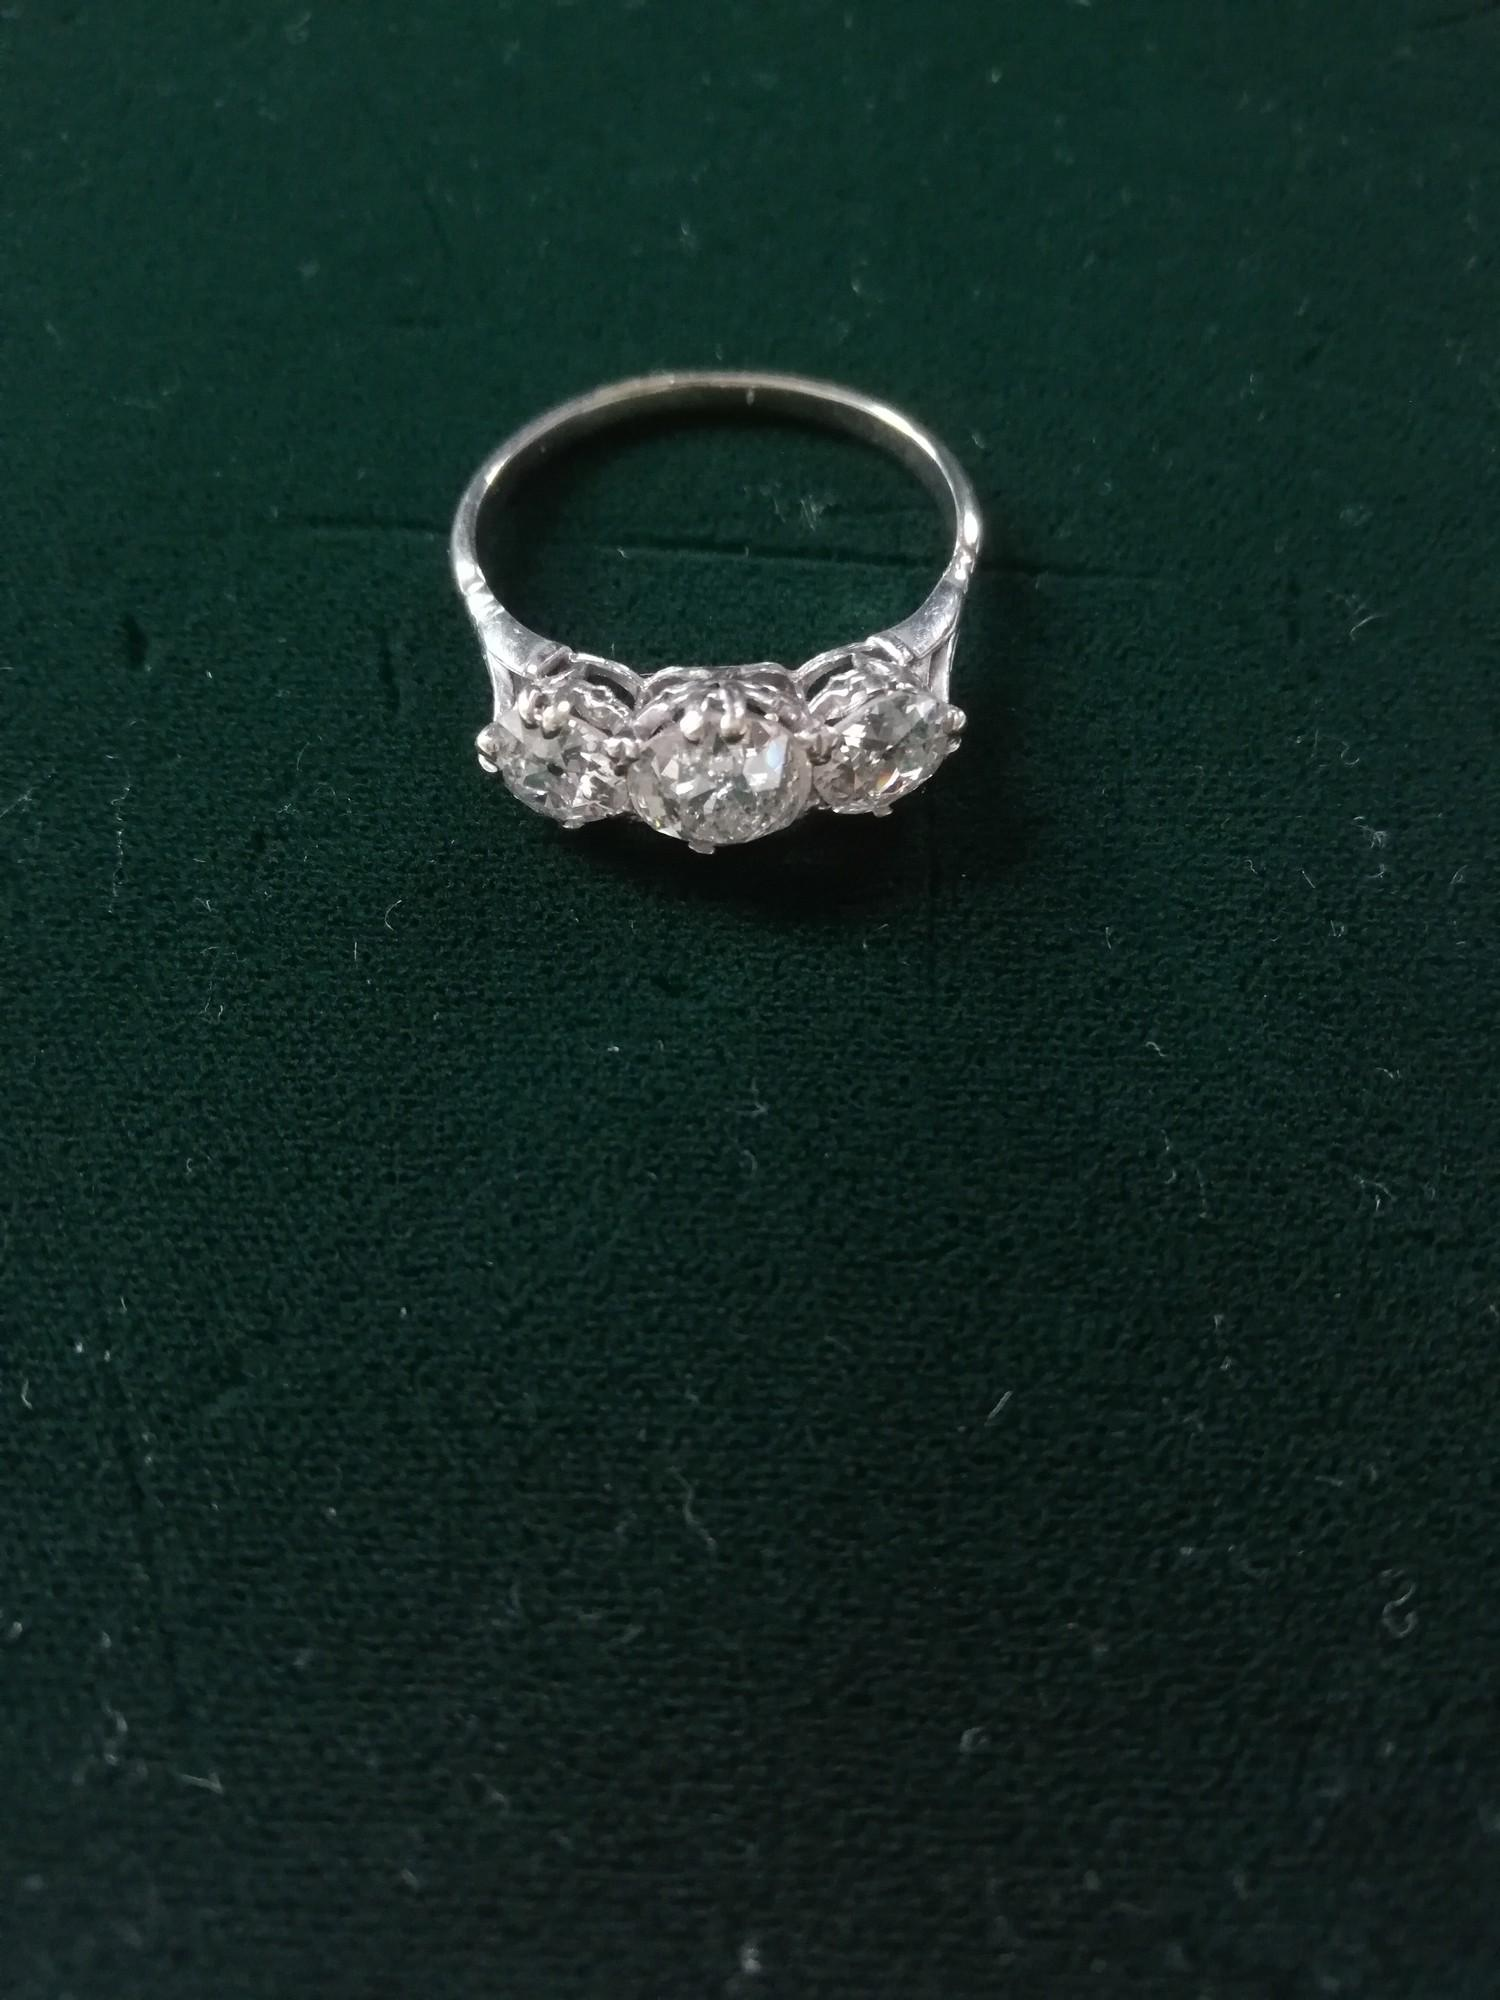 Antique 3 stone Diamond white metal ring 4ct in total - Image 2 of 2